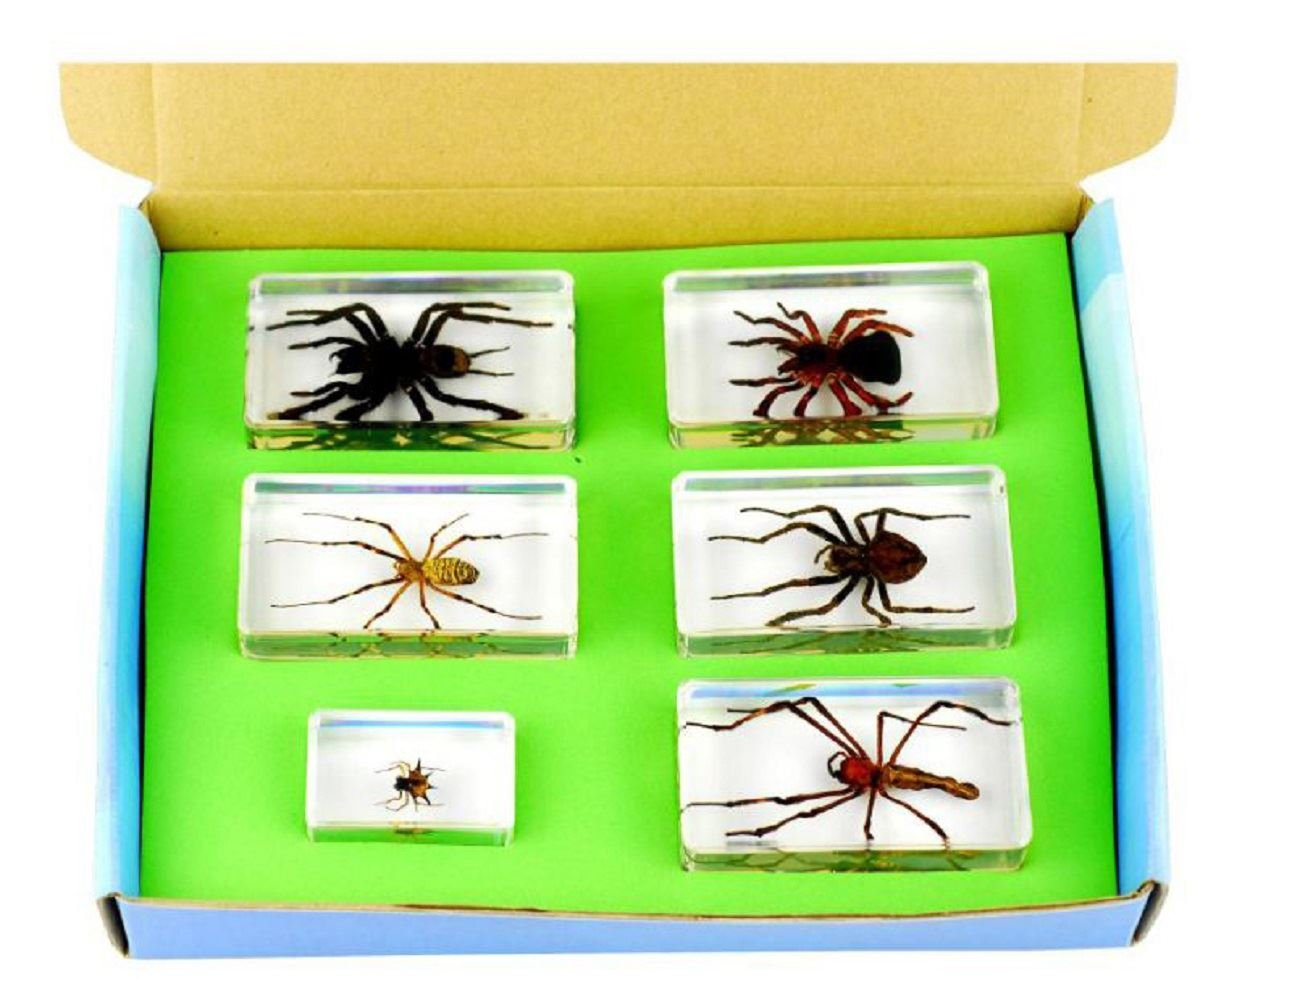 Real Nature 6 Piece Insect Spider Arachnid Paperweight Set Taxidermy